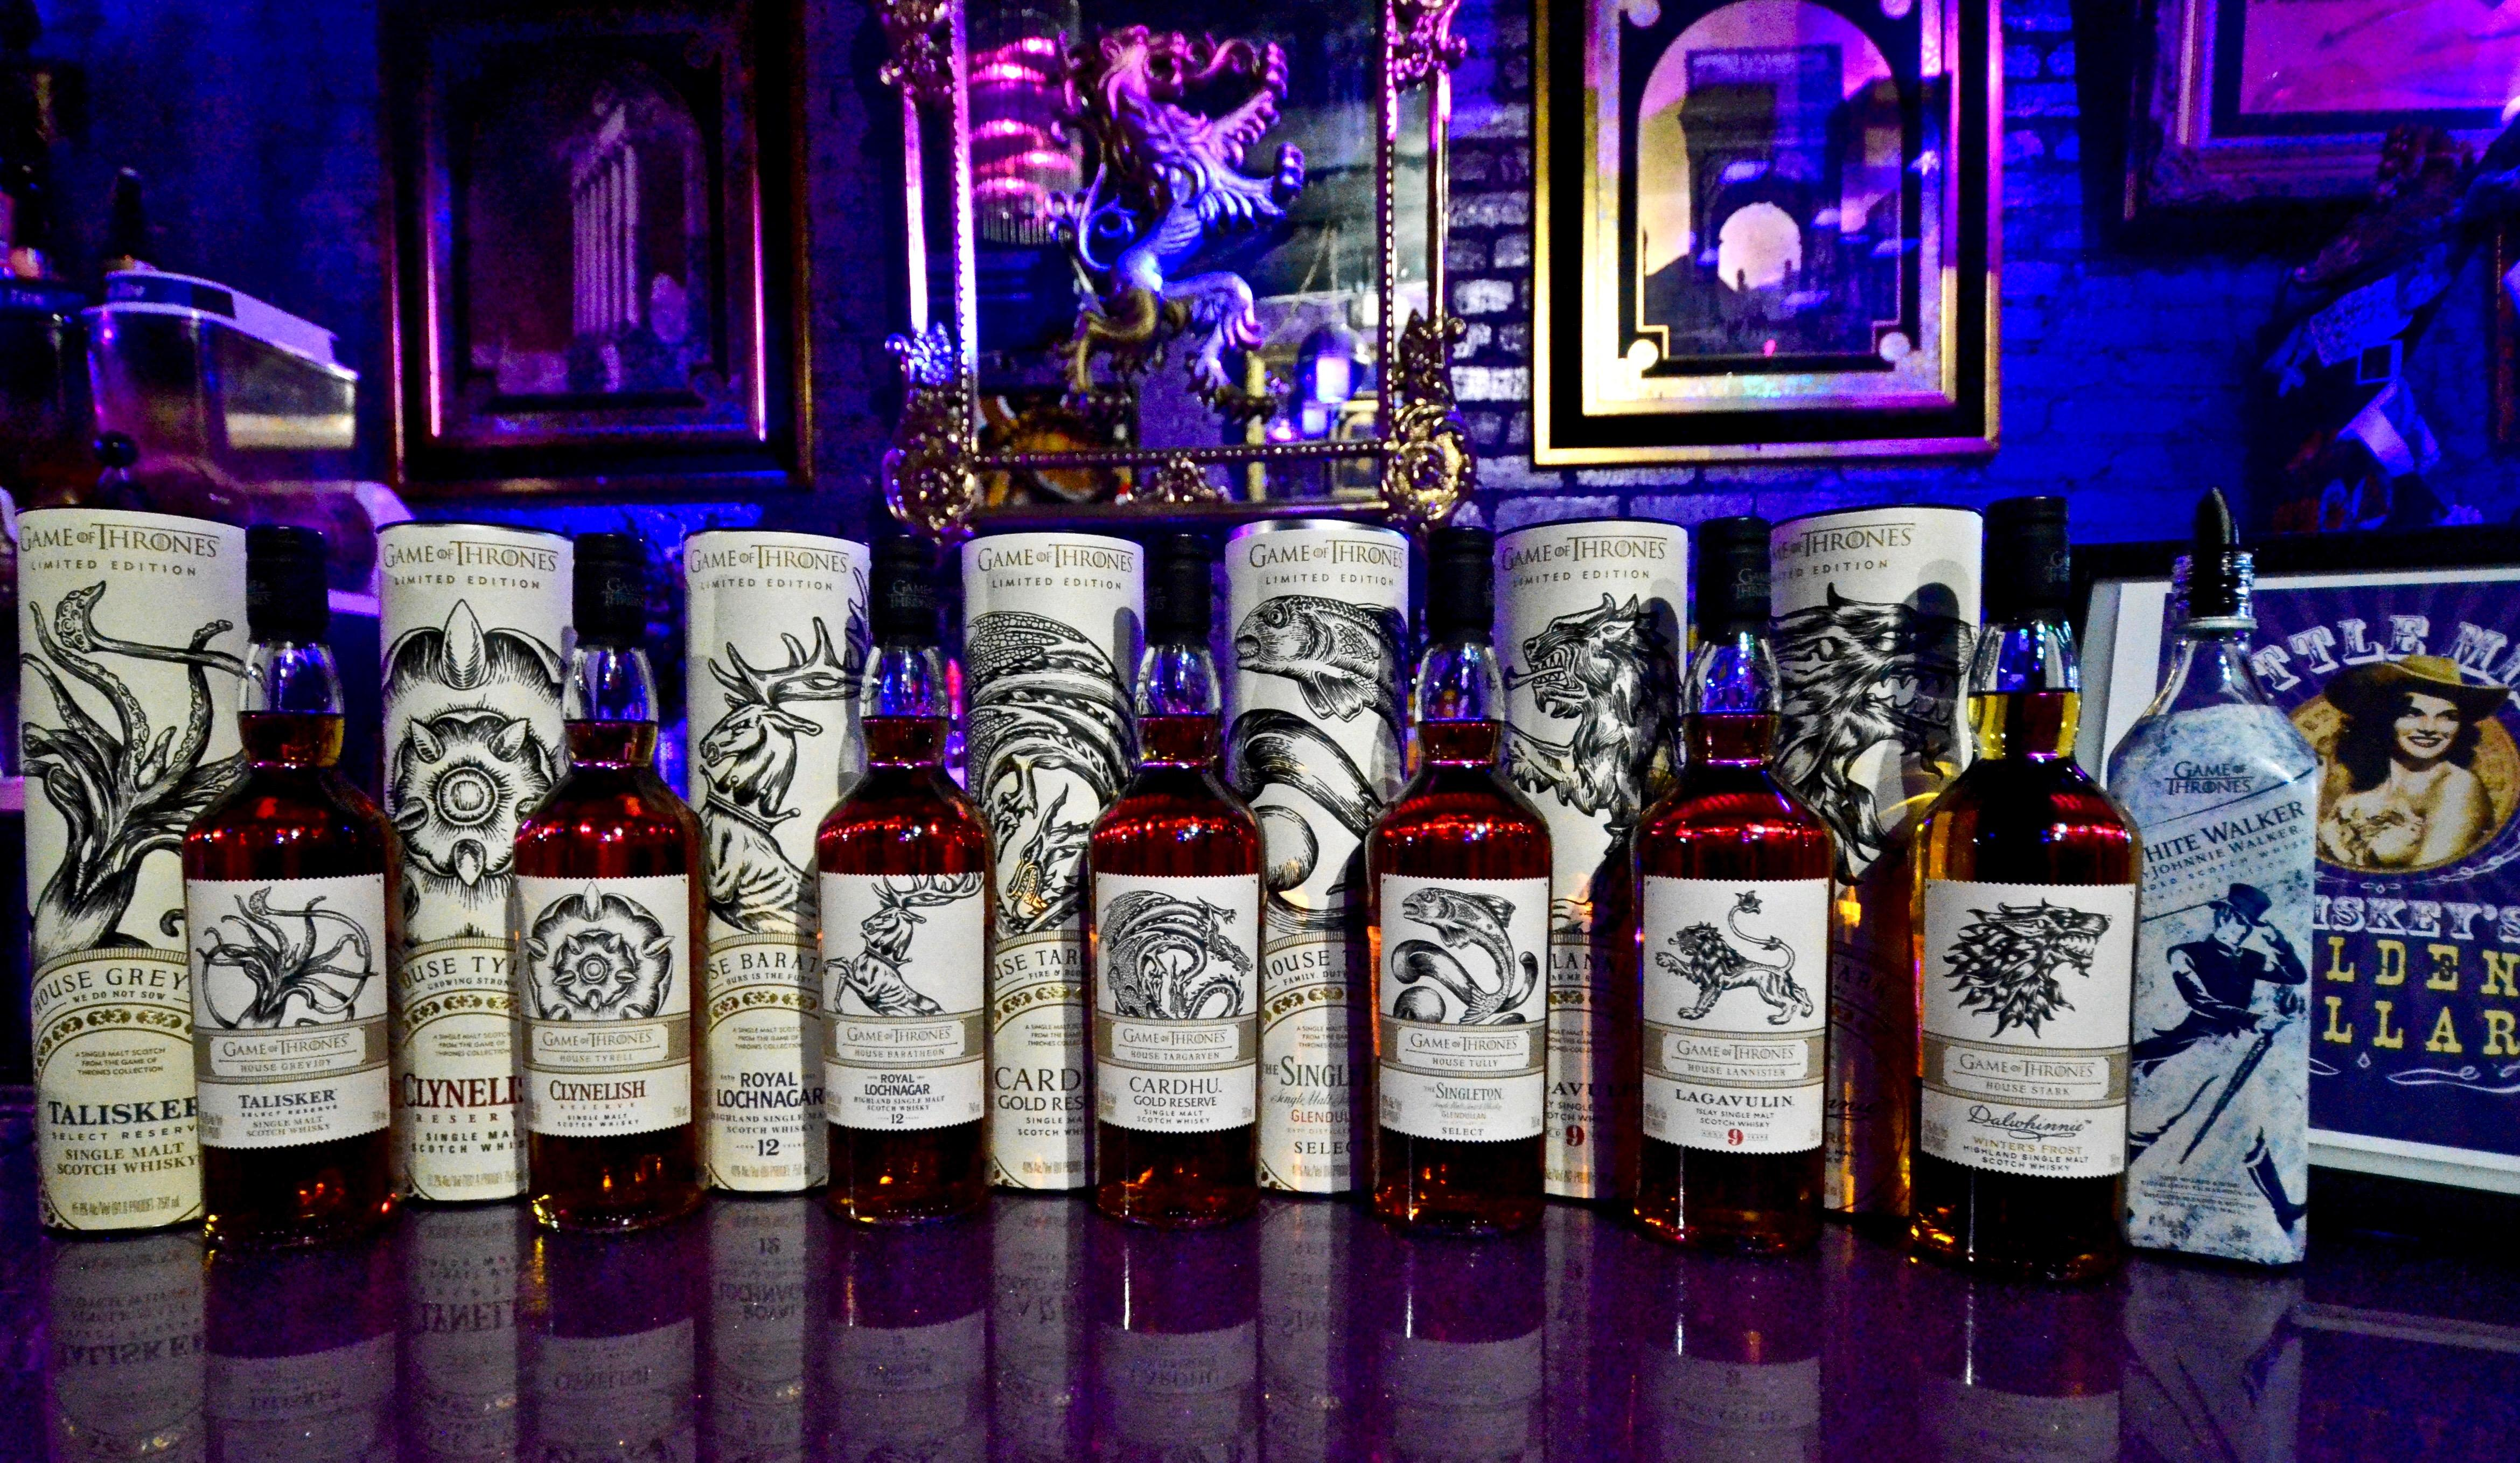 <p>Game of Thrones Scotch Flight at Little Miss Whiskey's Golden Dollar // Price: $15 for three samples // Buy online // https://lmw.ticketspice.com/miss-whiskeys-game-of-thrones-scotch-flight-3-samples-15 // (Image: Mark Thorp)</p>